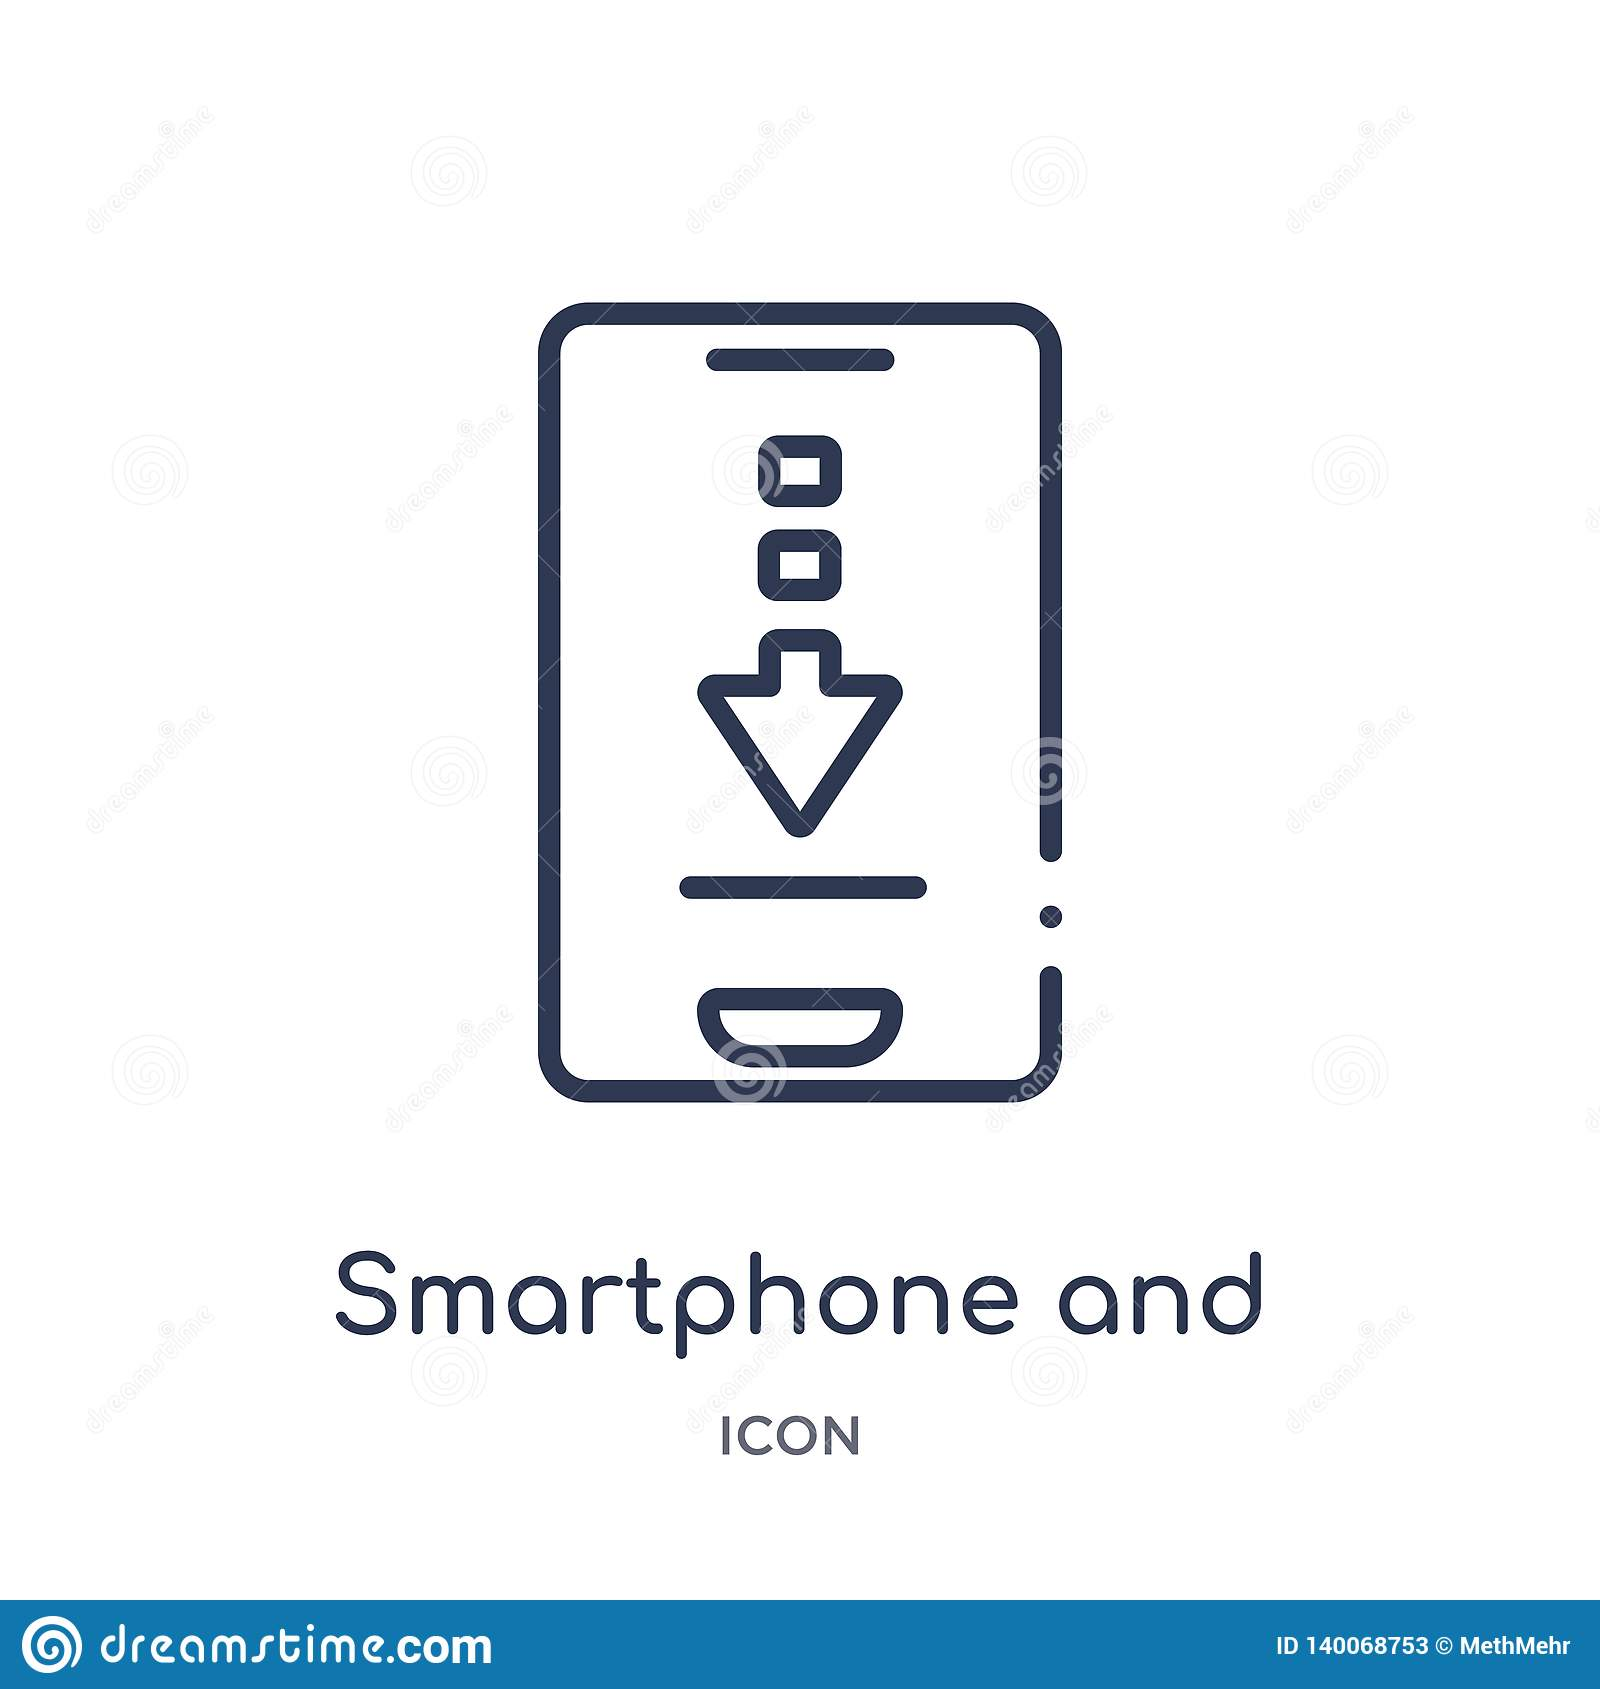 Smartphone And Download Arrow Icon From Ultimate Glyphicons Outline Collection. Thin Line Smartphone And Download Arrow Icon Stock Vector ...